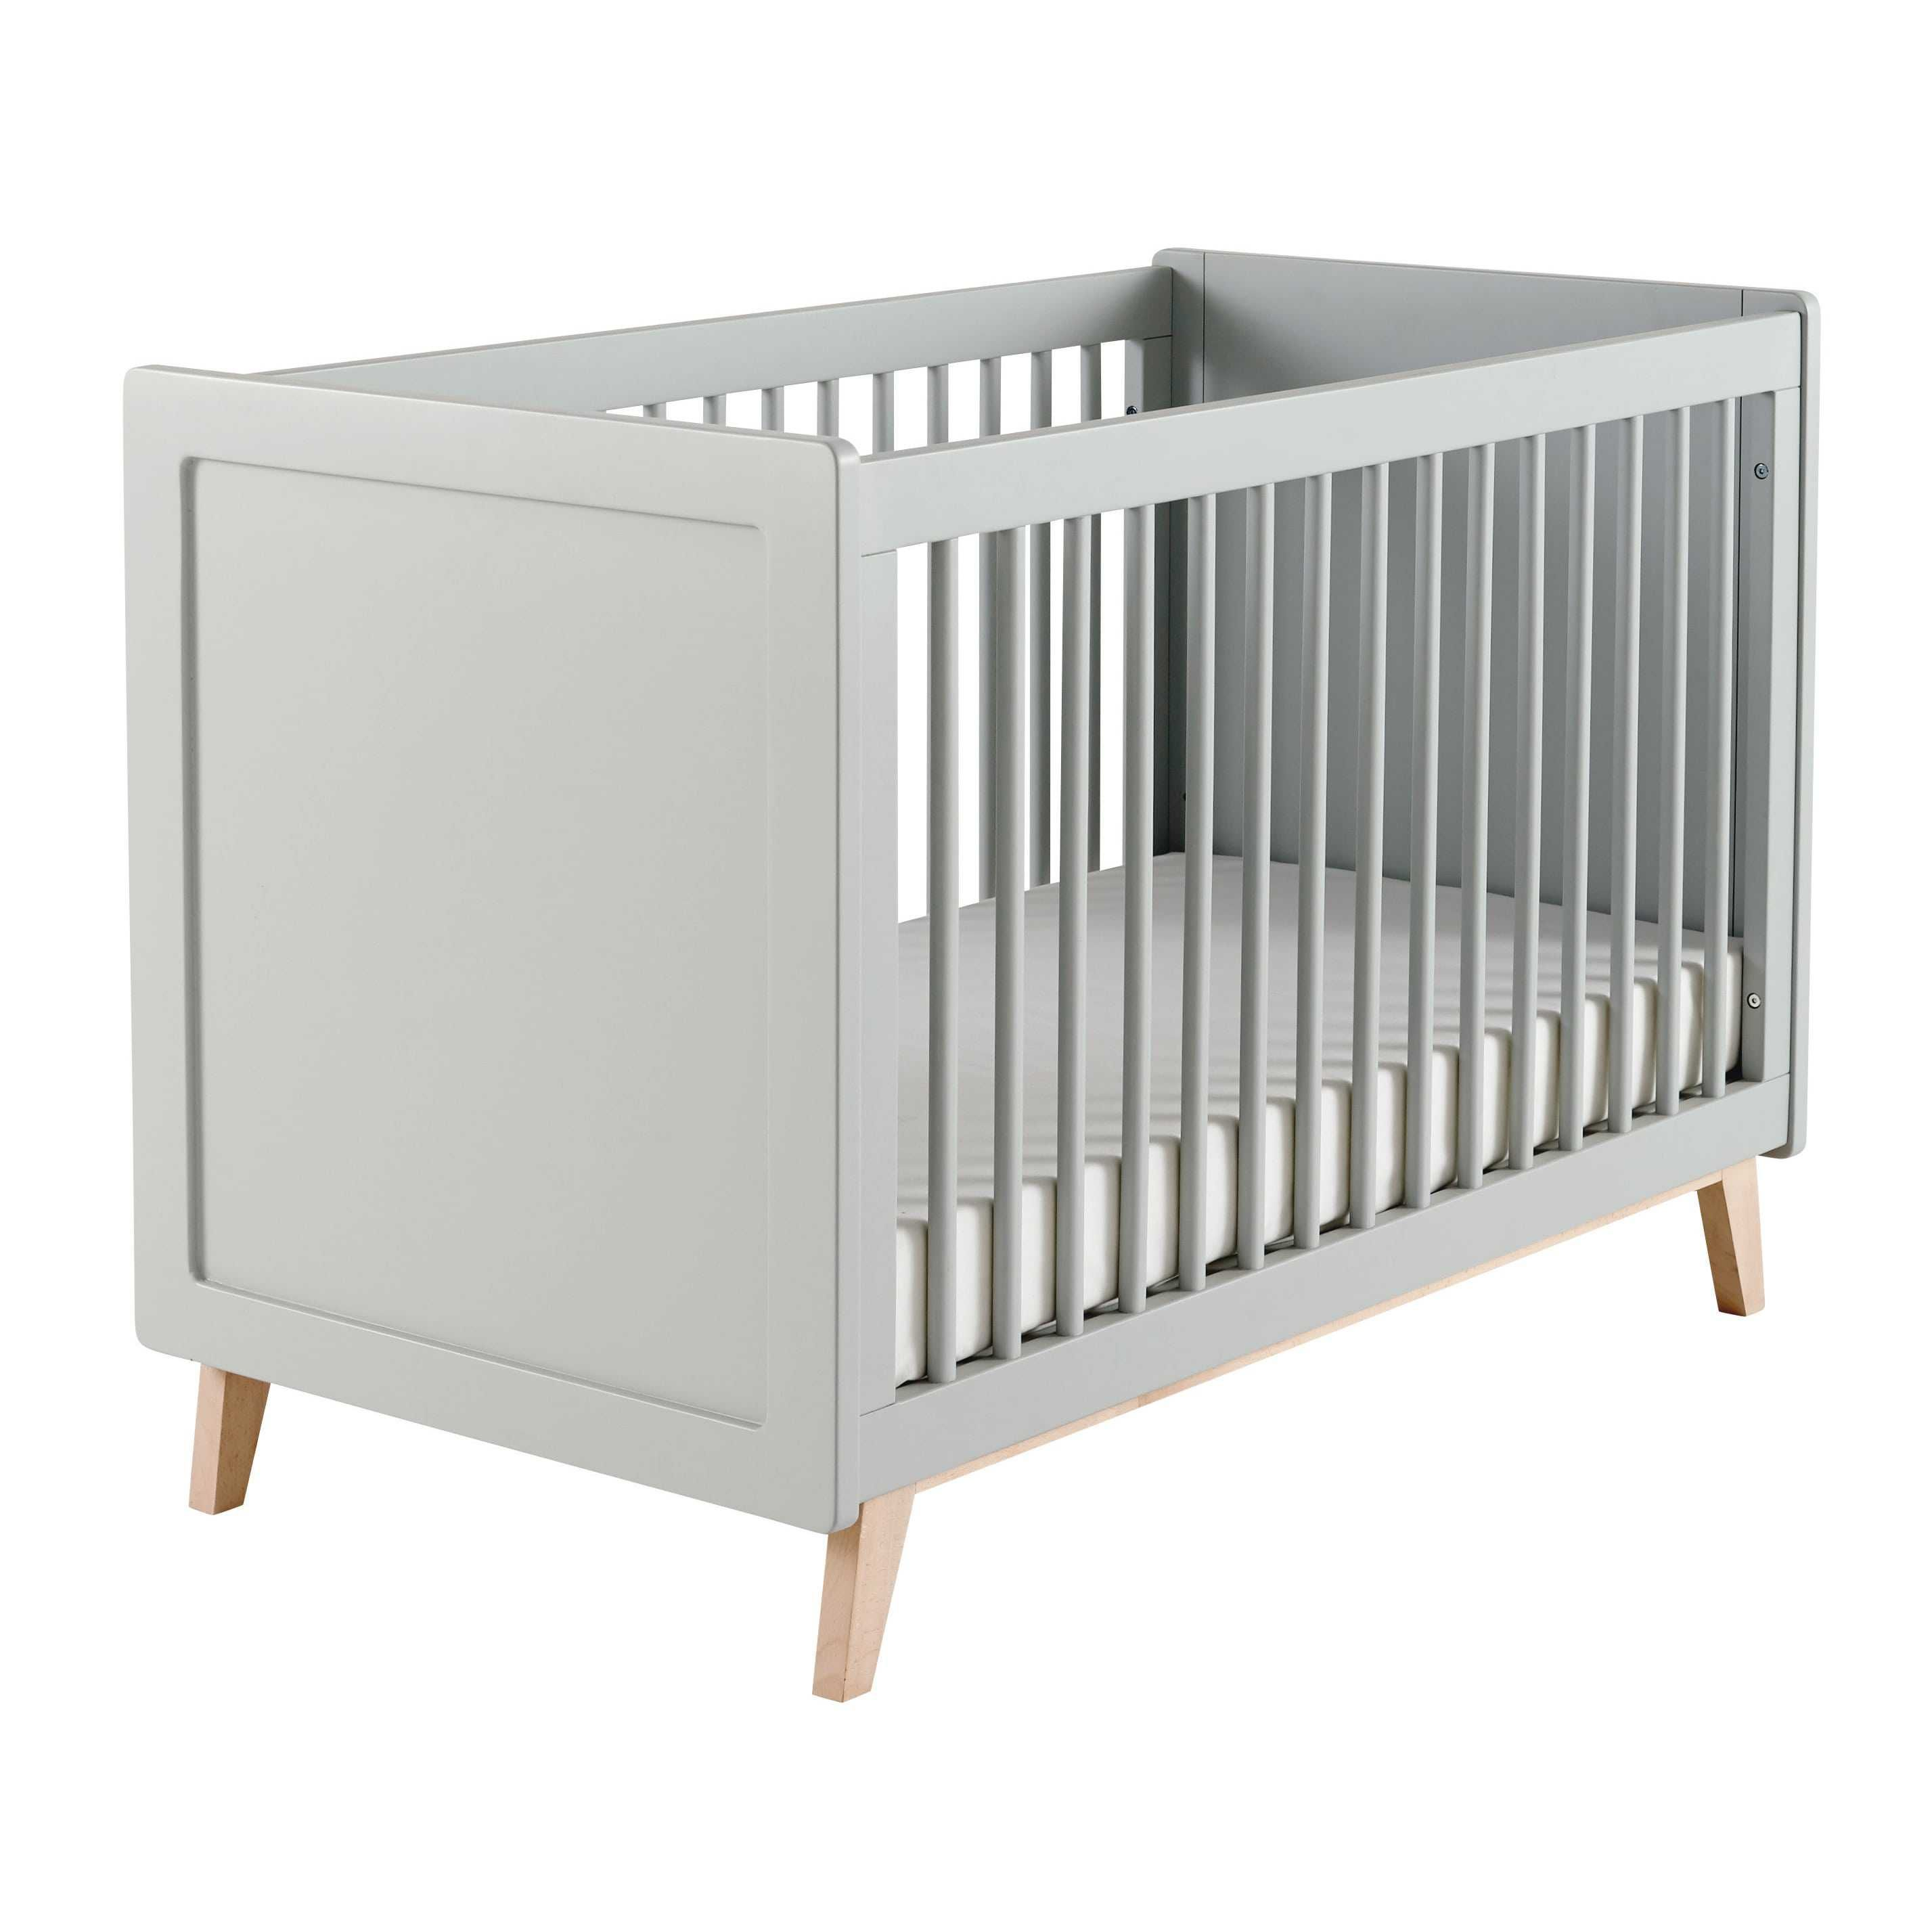 Ikea Spijlenbed Babys Little Peanut Baby Room Decor Grey Cot Baby